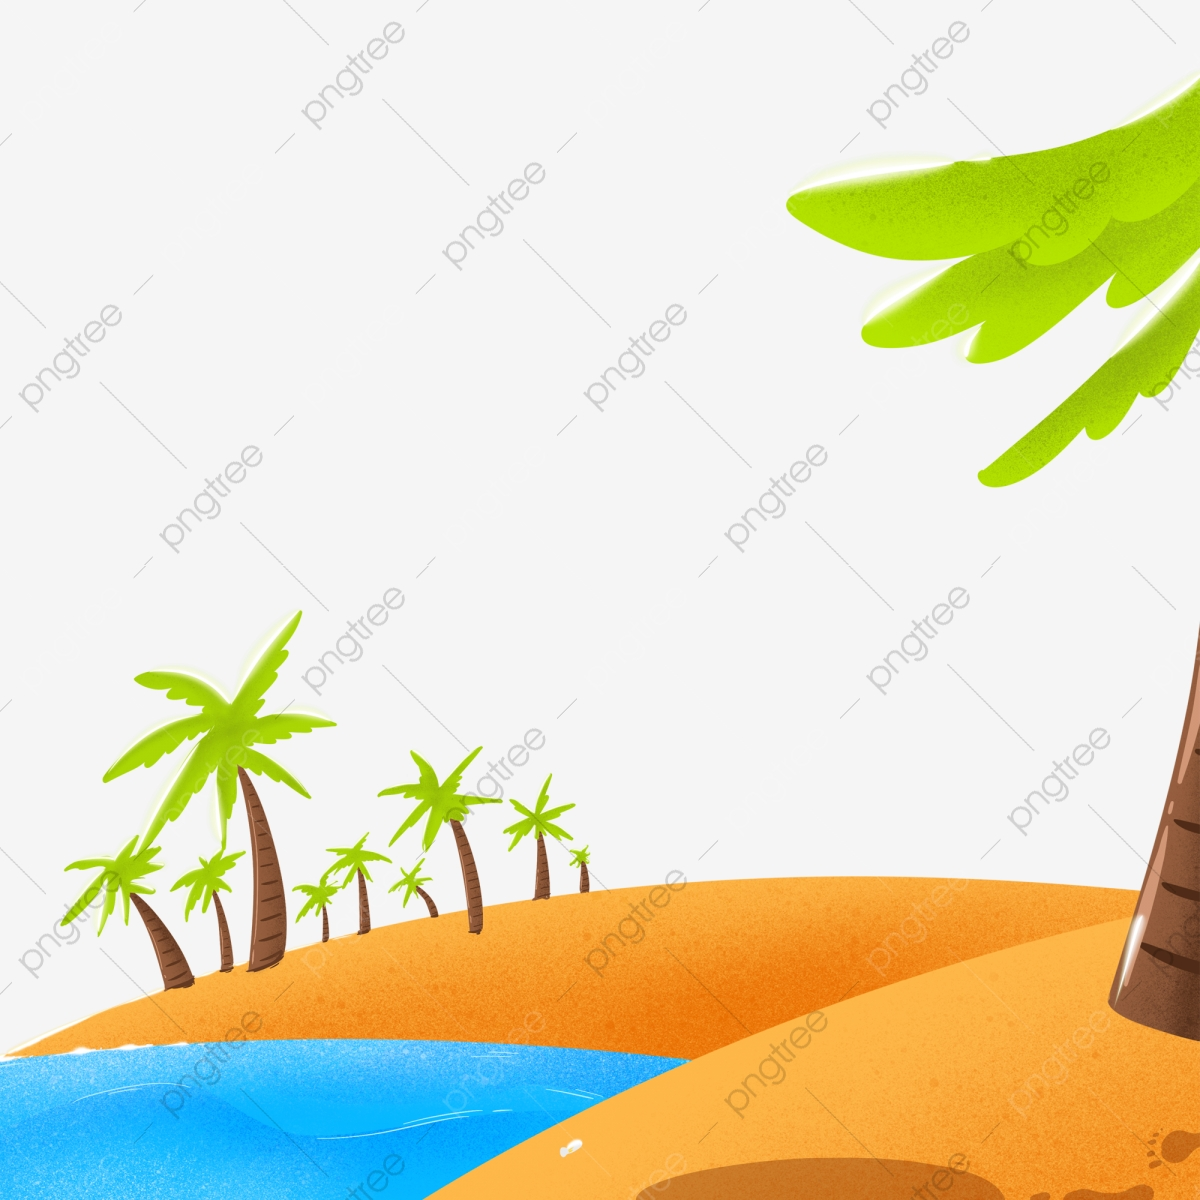 Cartoon Beach Beach Clipart Island Beach Png Transparent Clipart Image And Psd File For Free Download Most relevant best selling latest uploads. https pngtree com freepng cartoon beach 4439986 html